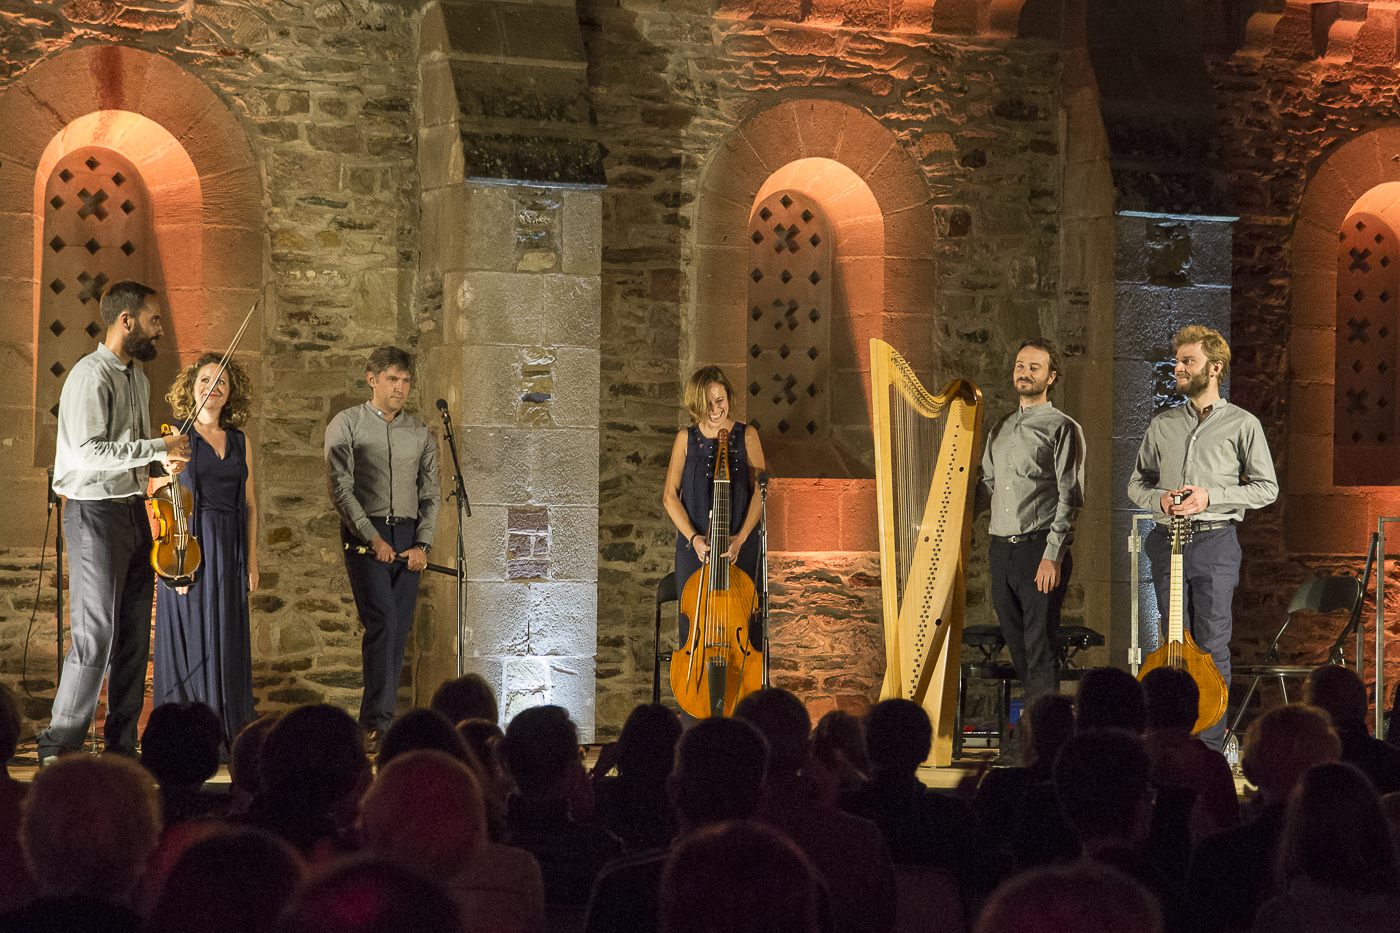 Les musiciens de l'ensemble baroque The Curious Bards, concert By moonlight on the green, Conques, Aveyron, 2020 ©George Berte